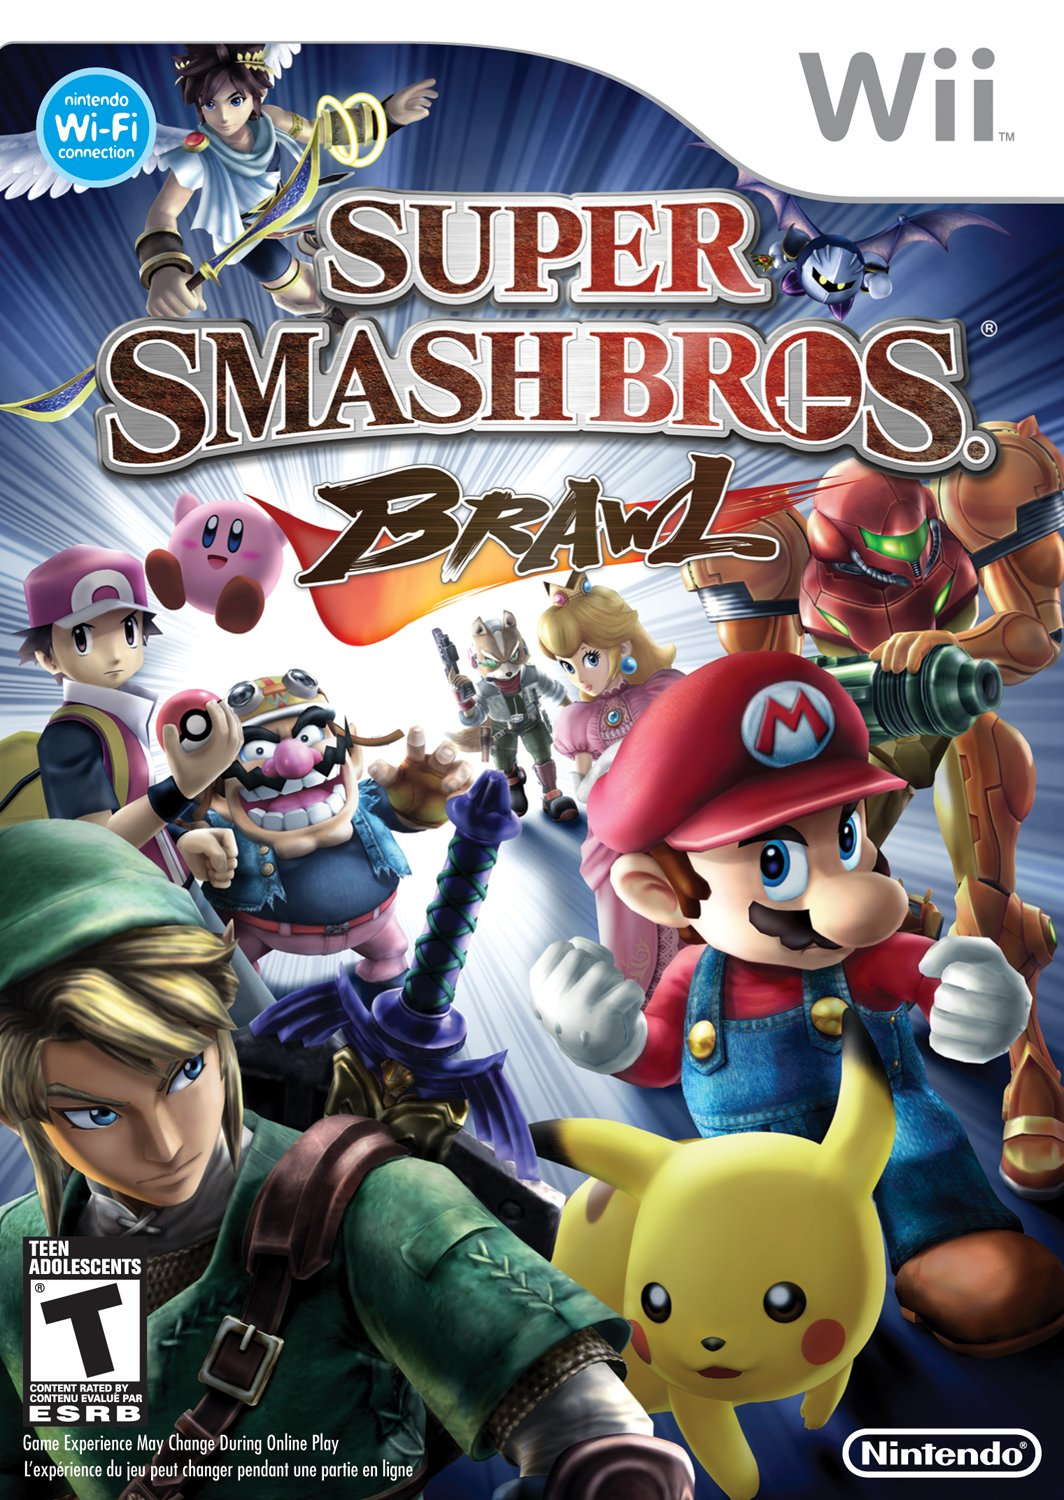 Favorite Wii Game and Why You Like it? Super_smash_bros_brawl